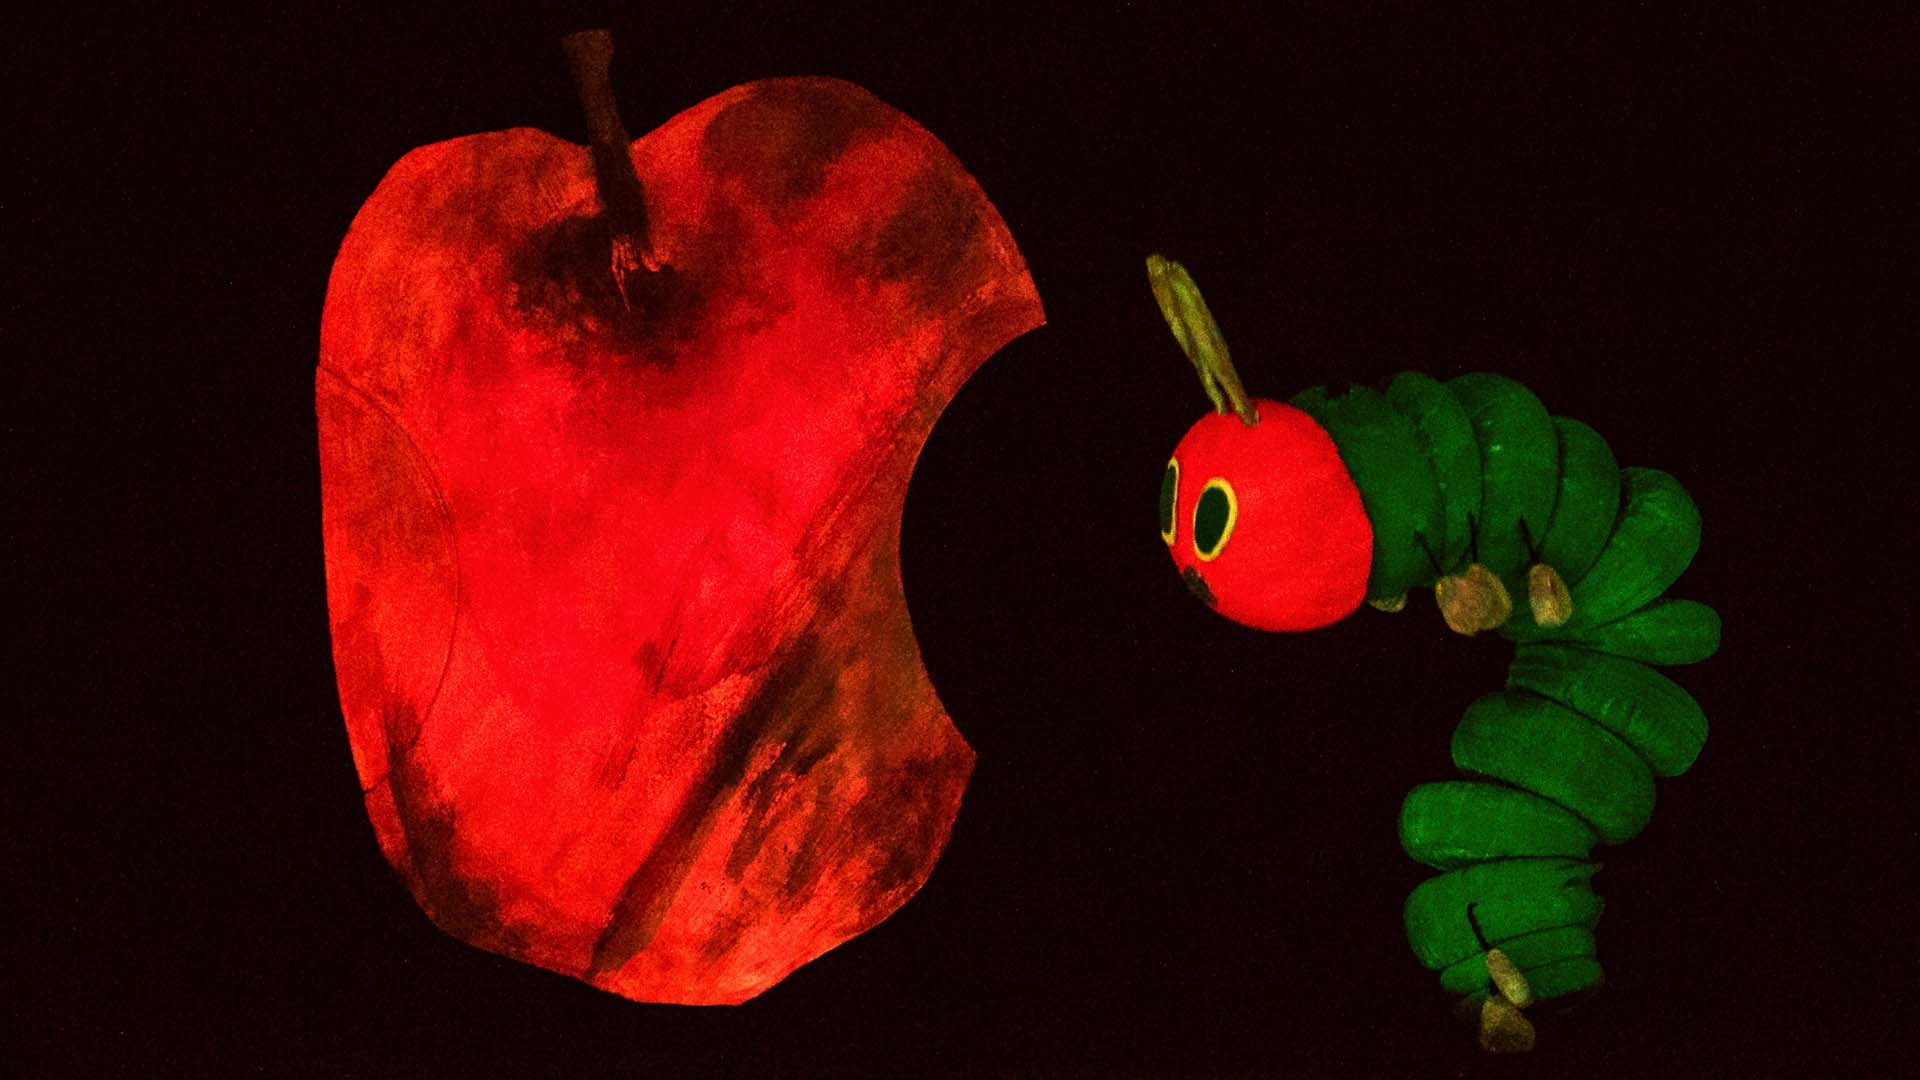 A puppet of a caterpillar and a red apple